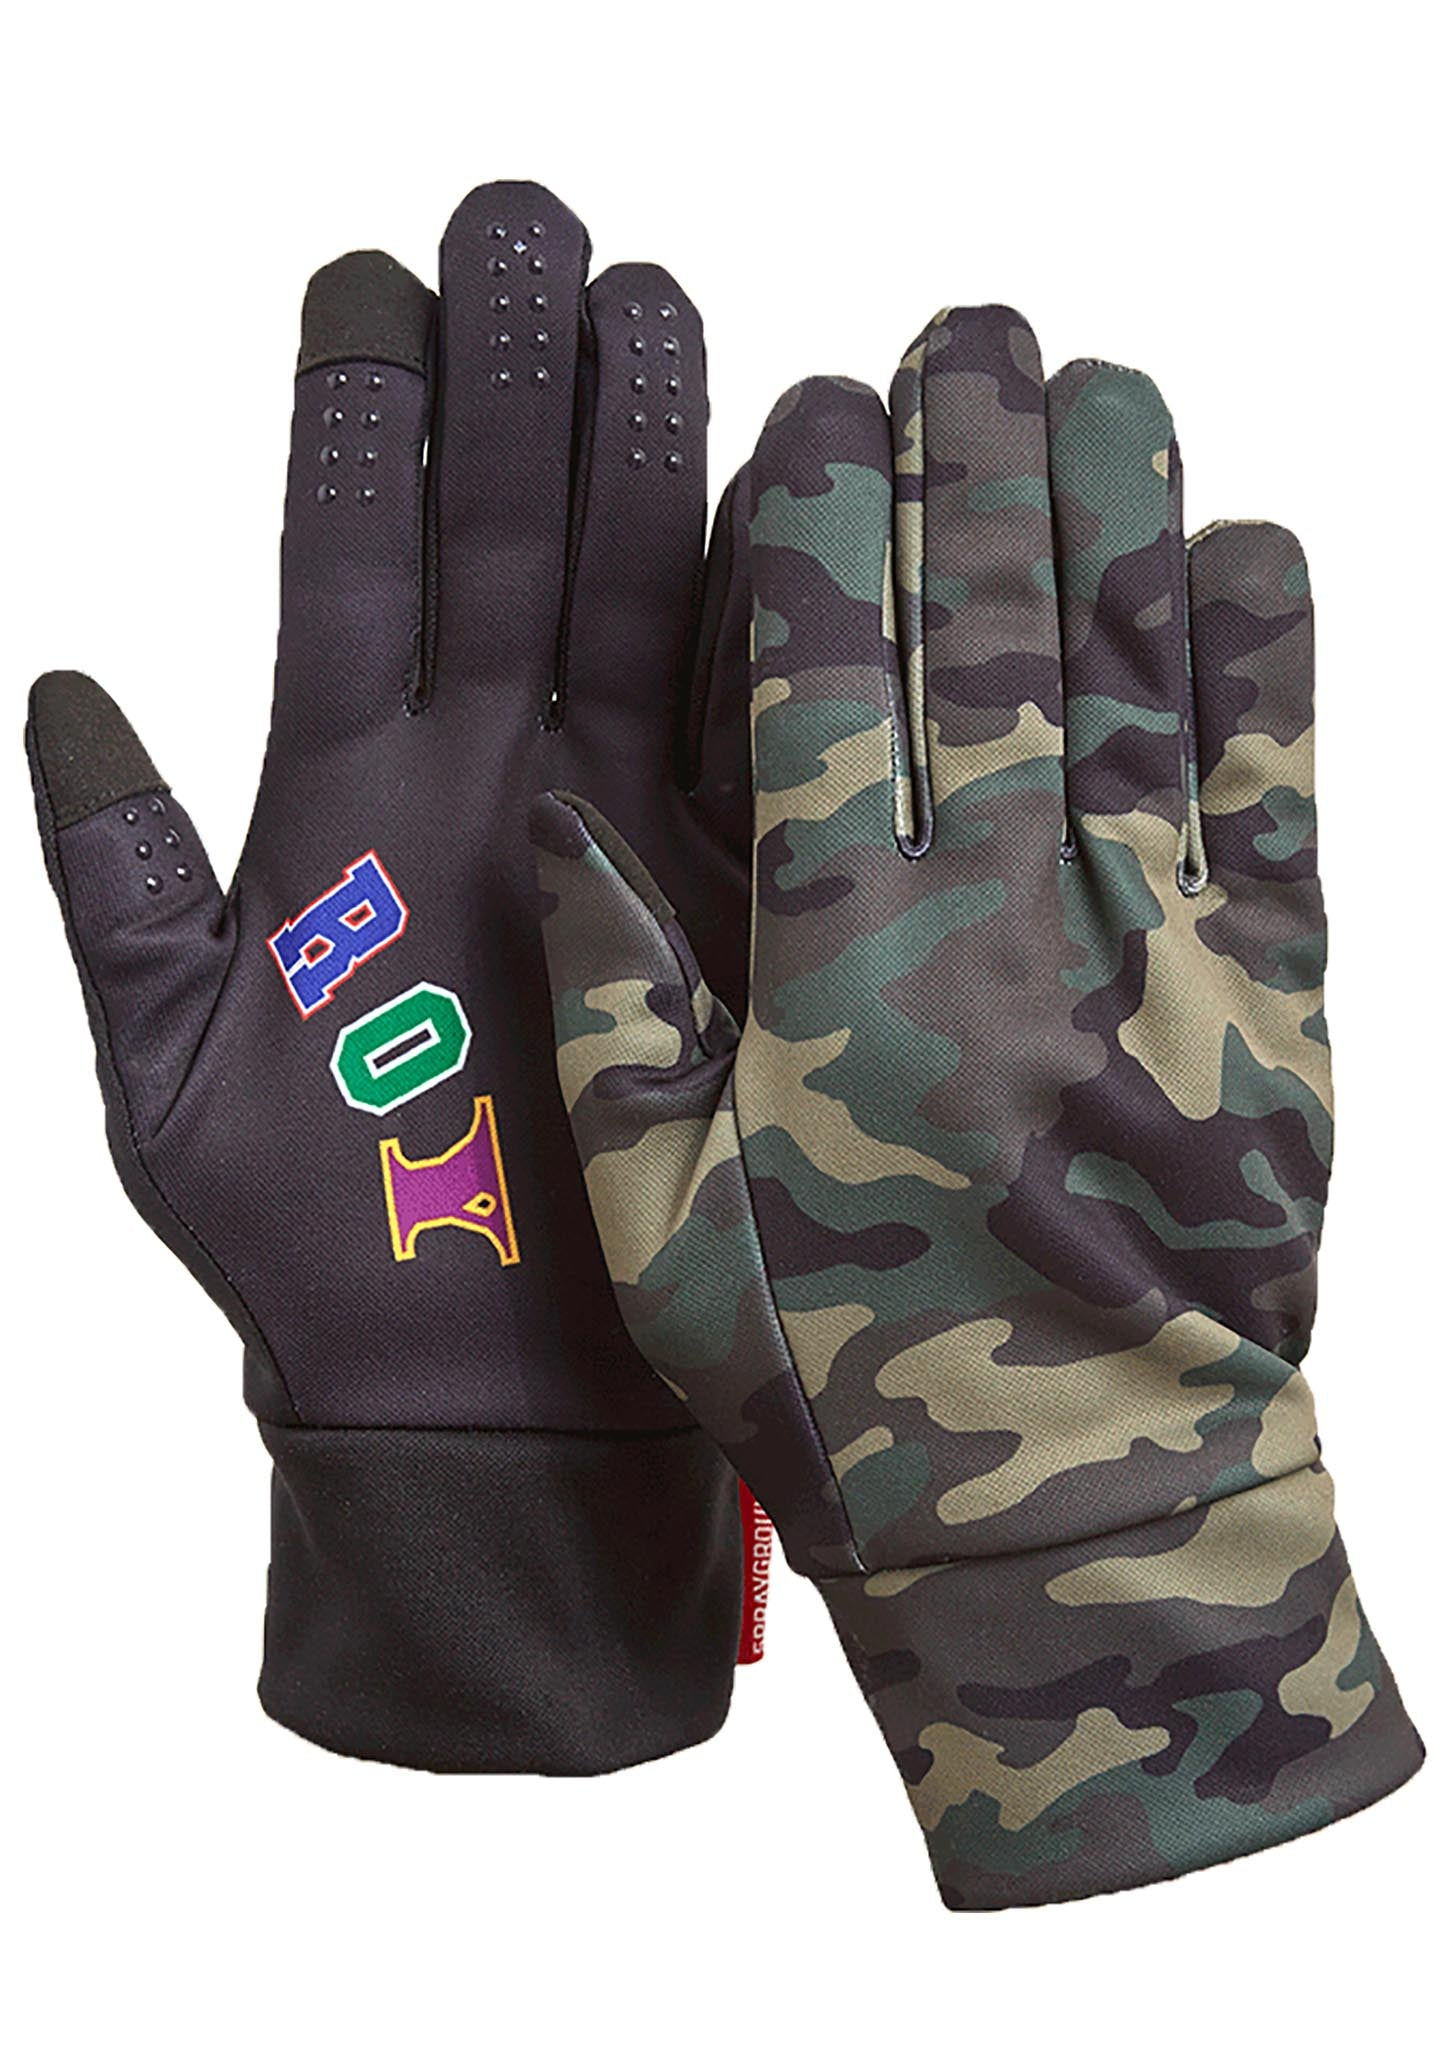 Split Destroy Gloves Sizes L and XL in Camo/Black